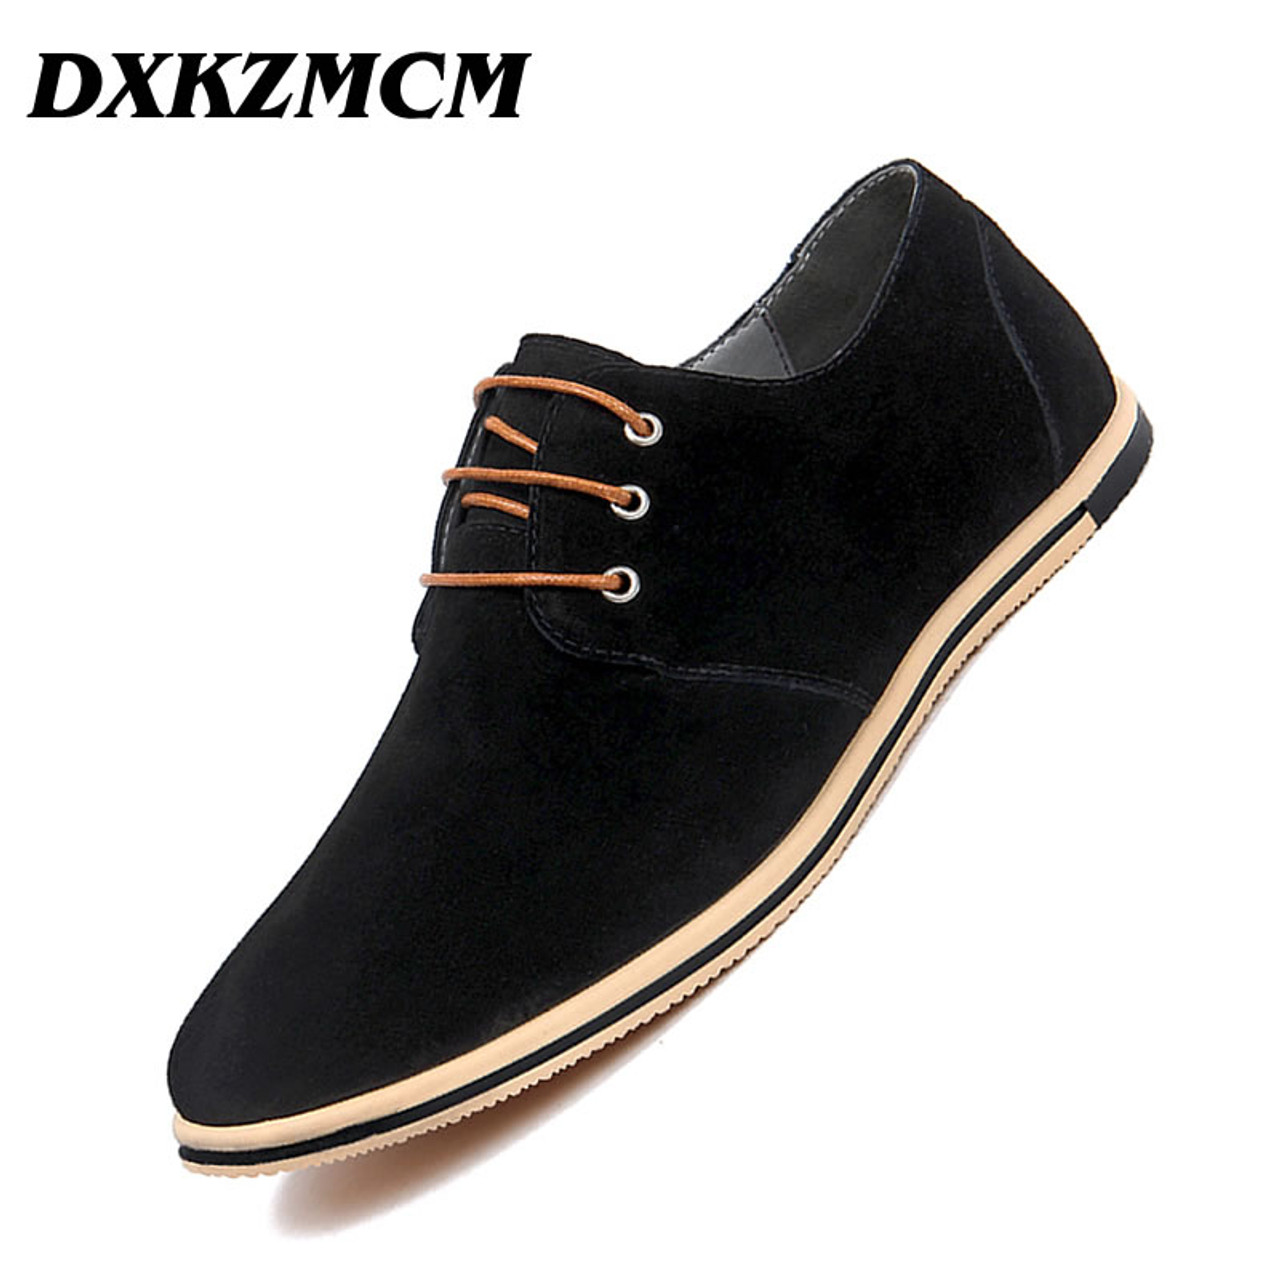 Dxkzmcm Handmade Men Leather Shoes Brand Casual Comfortable Formal